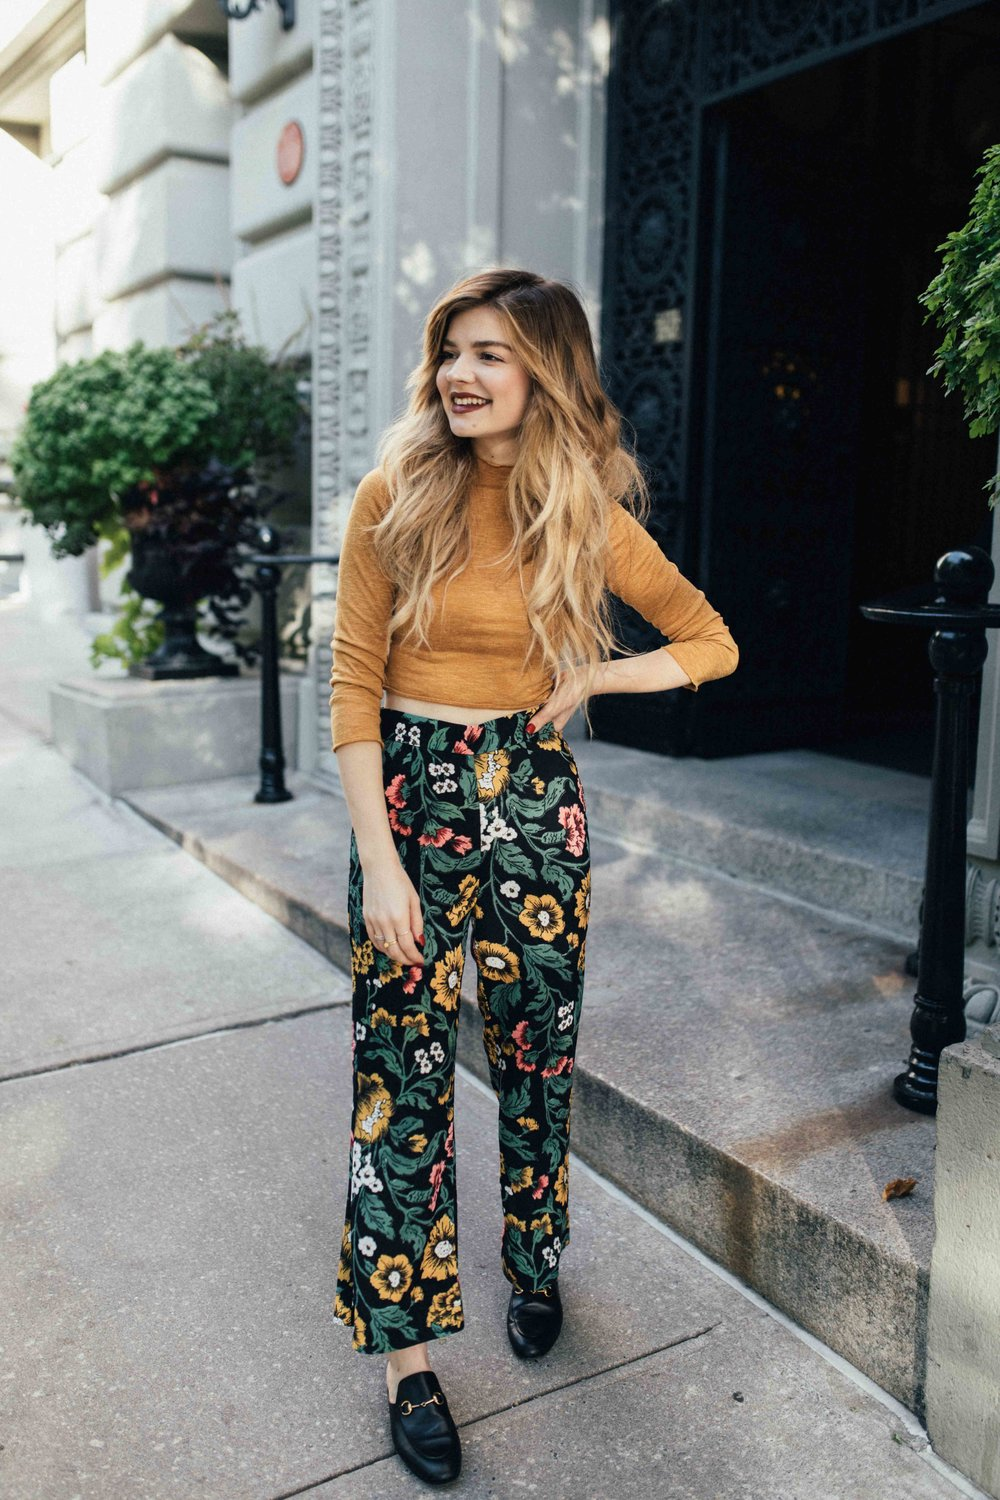 outfits_ (9 of 22).jpg